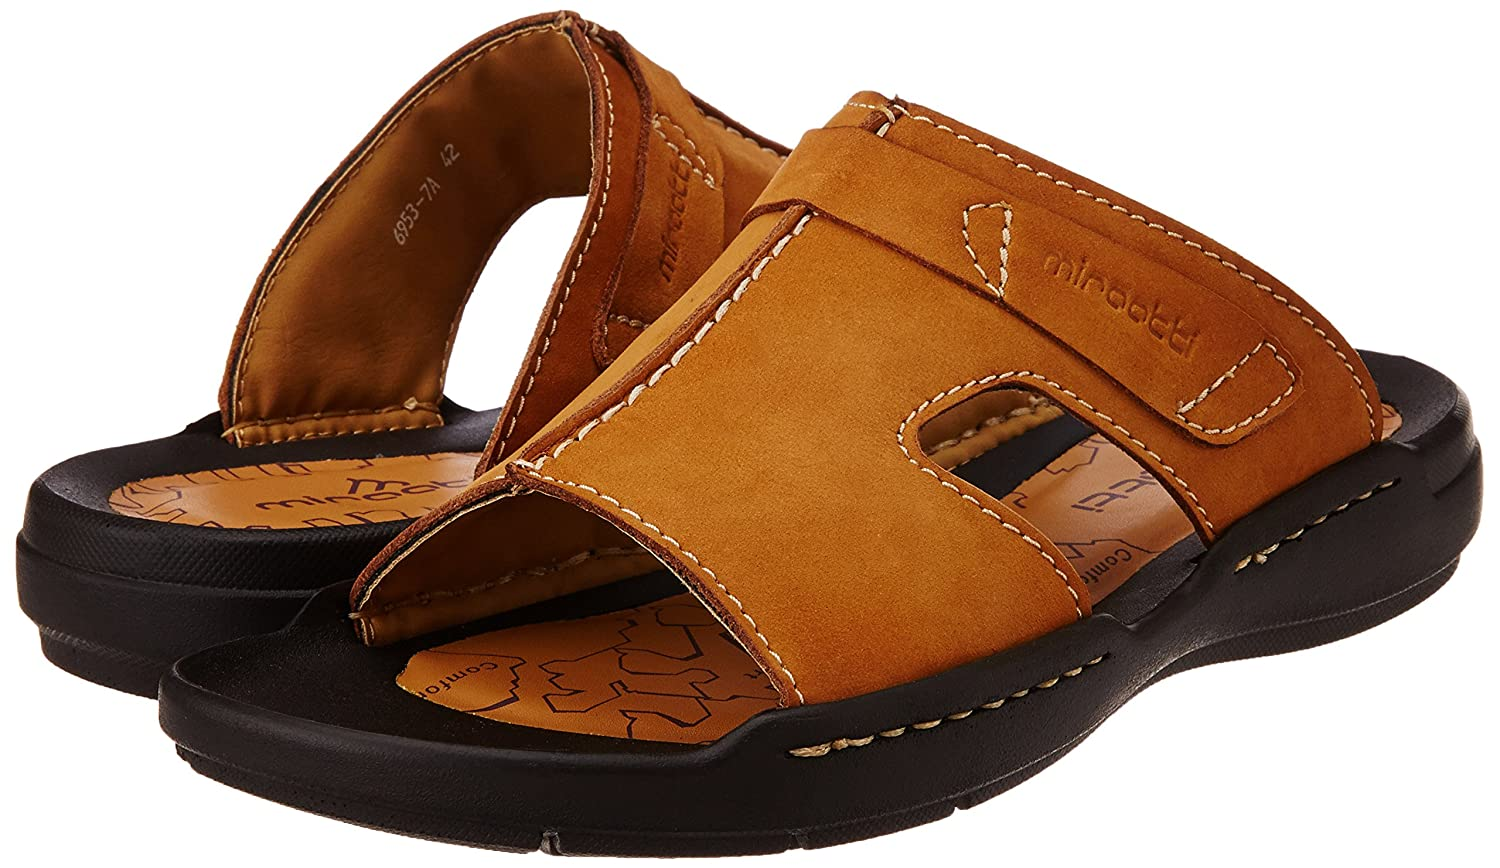 7e1c9c19b96 Miraatti Men s Apricot leather Sandals and Floaters - 11 UK (6953-7A)  Buy  Online at Low Prices in India - Amazon.in